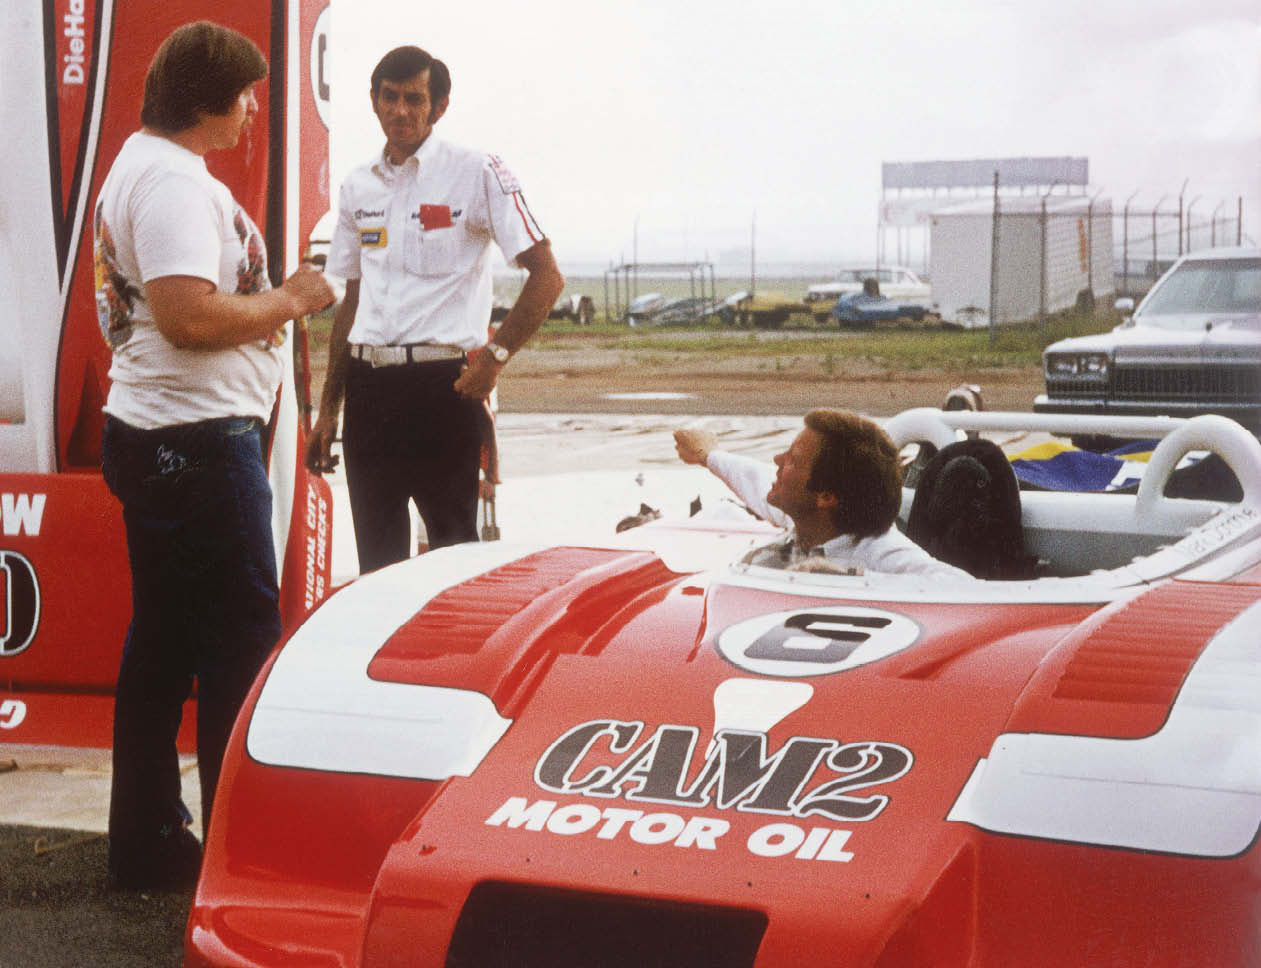 Porsche's Helmut Flegl oversees the run as Mark Donohue gets settled in the car